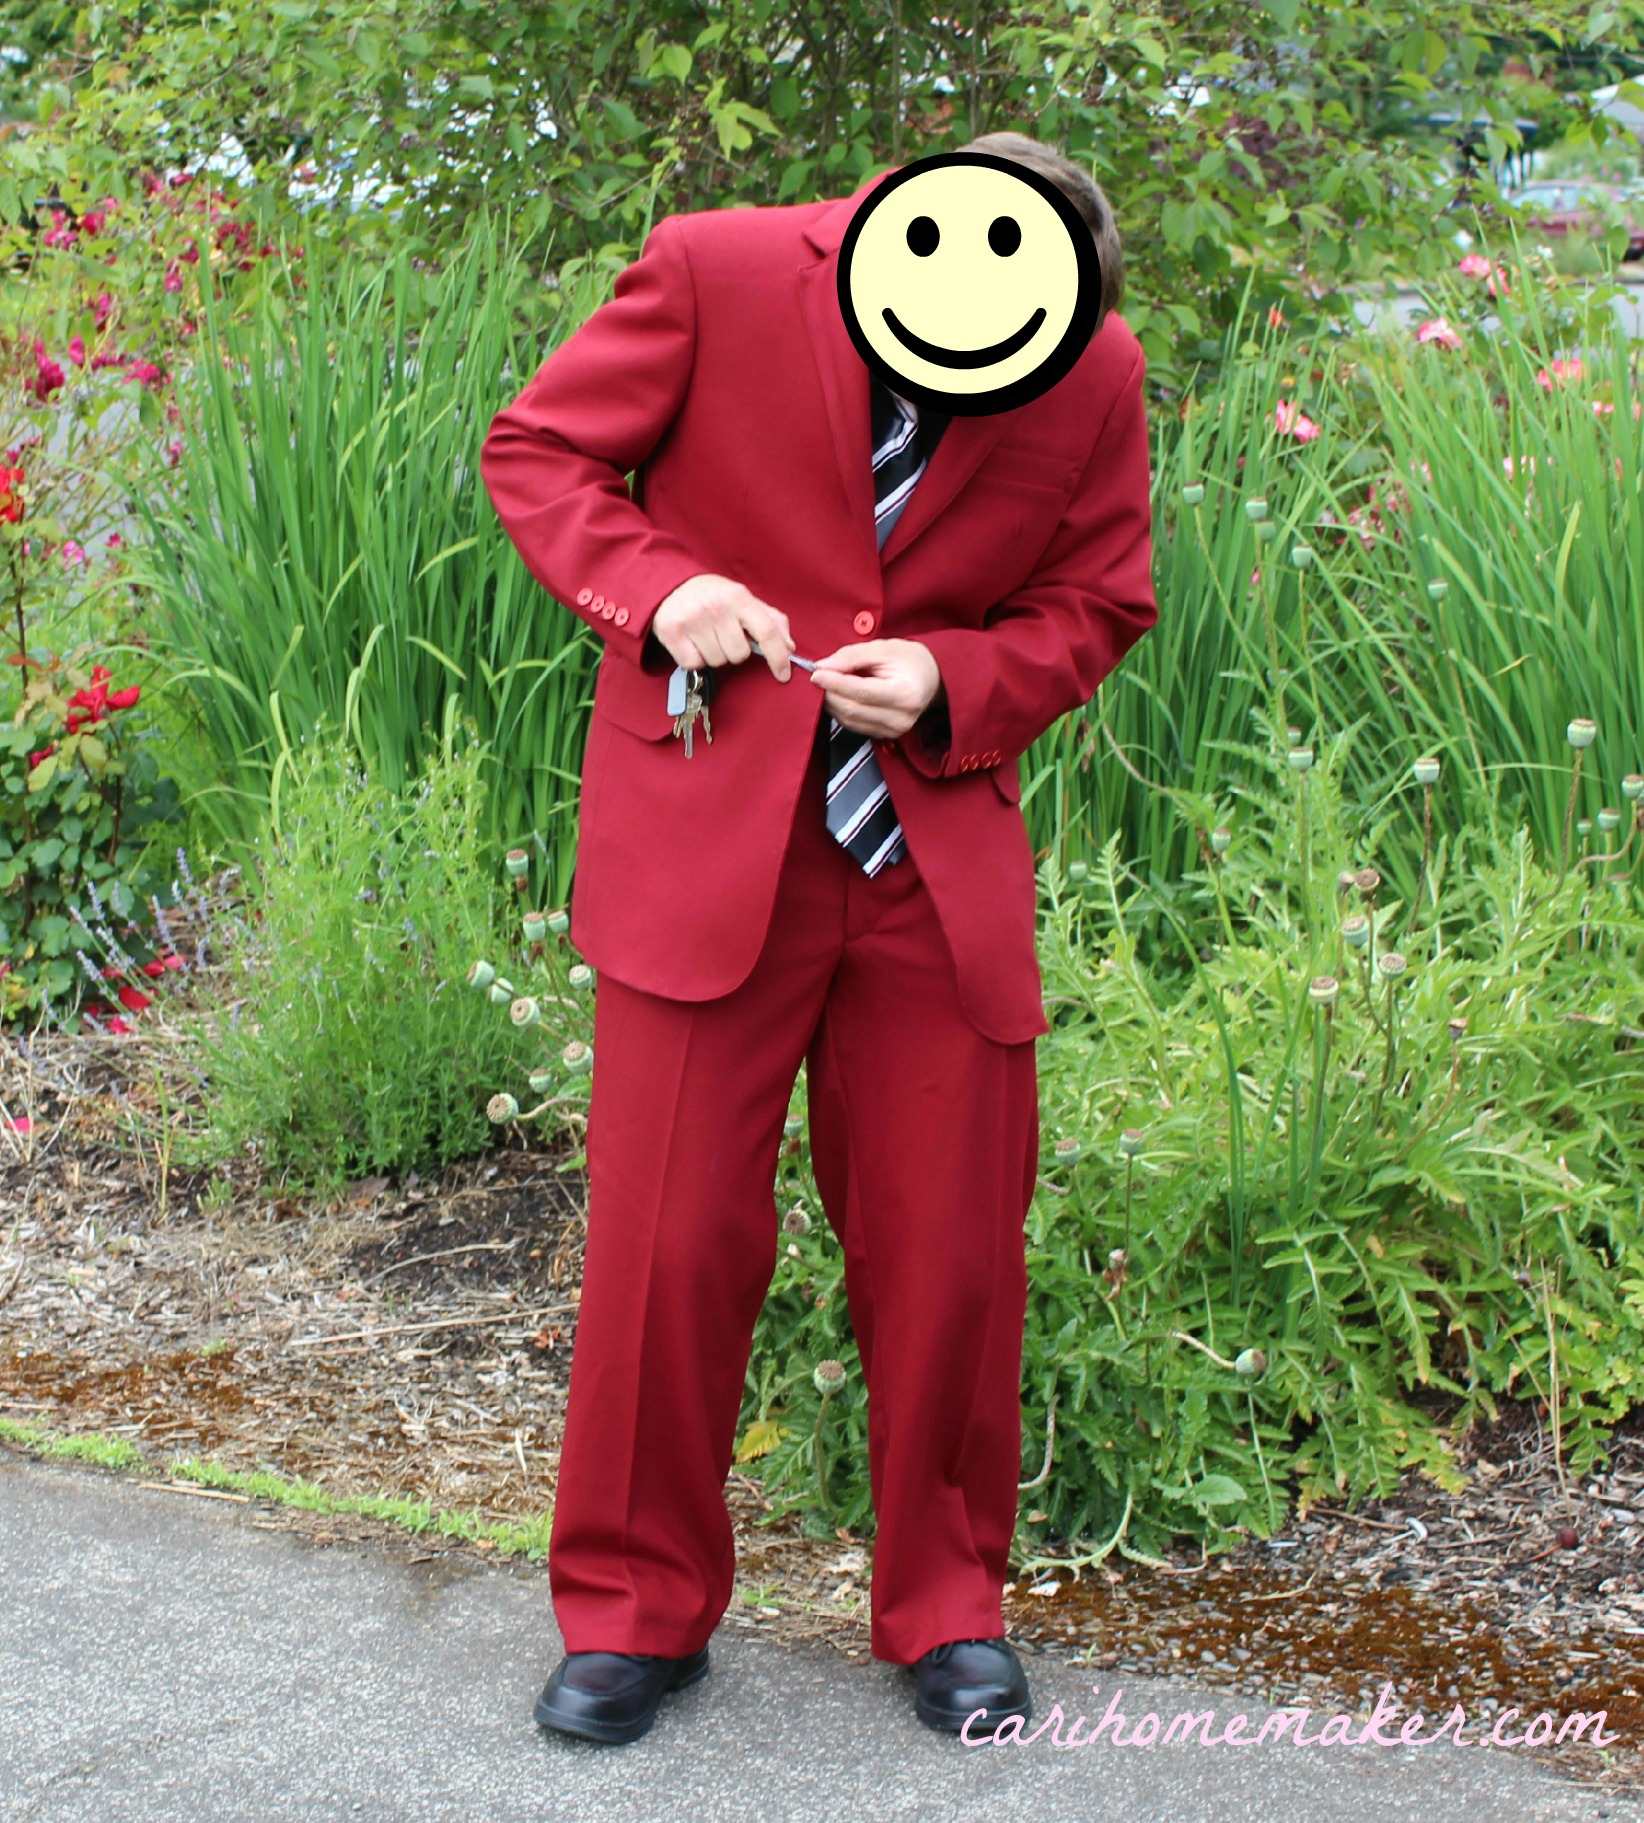 Red suit attacking buttonhole